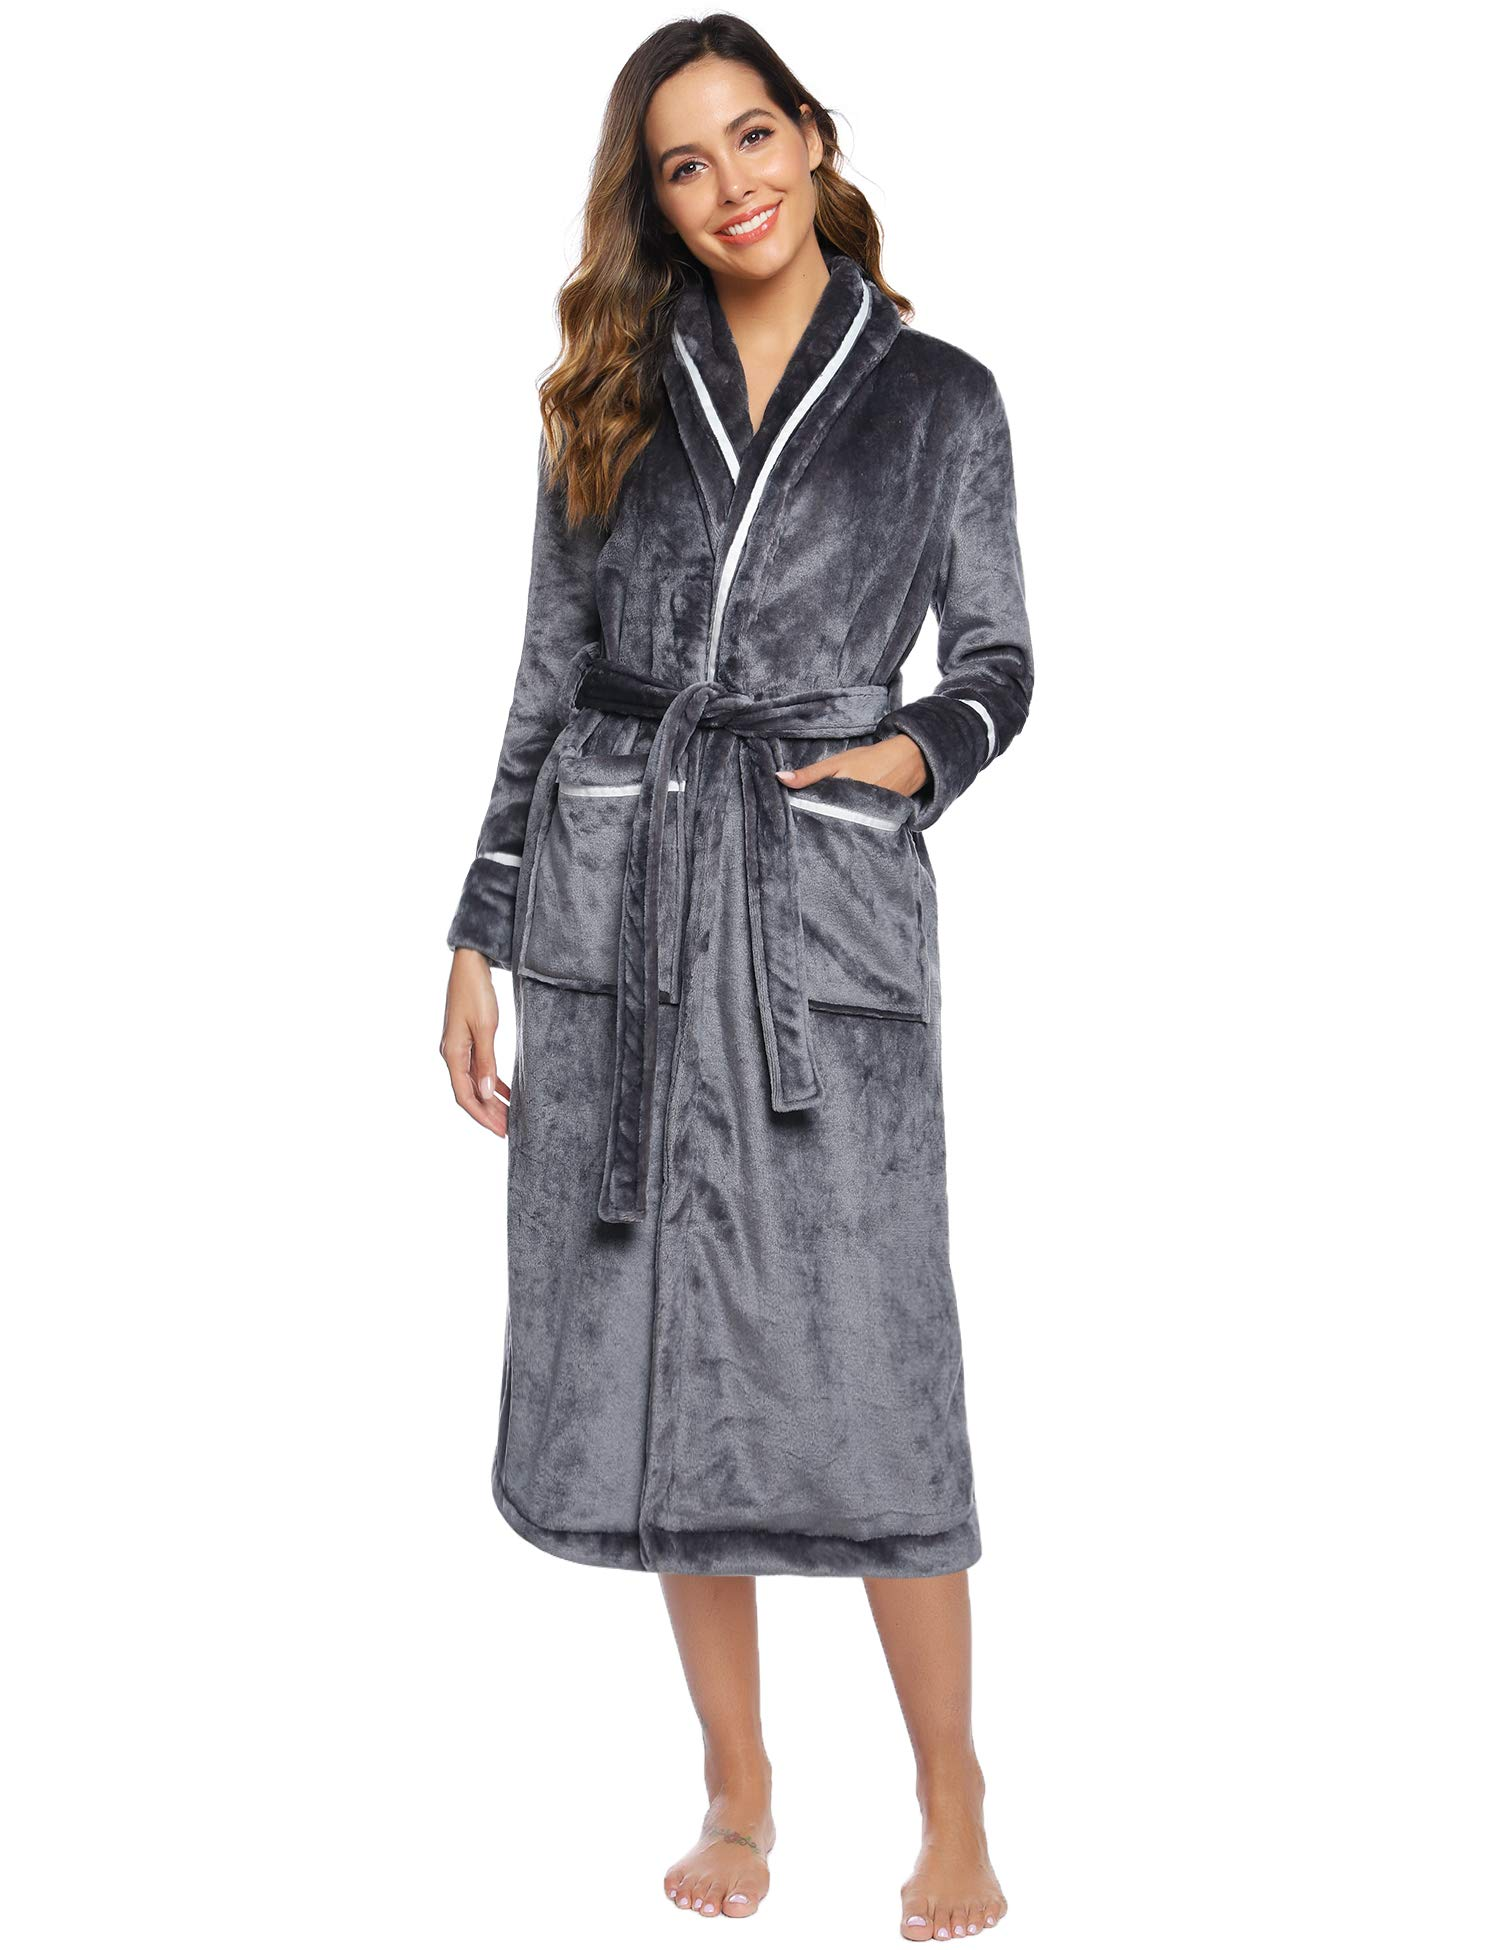 Hawiton Women's Fleece Robes with Hood, Luxu Soft Bathrobe Loungewear Nightgown with Pockets